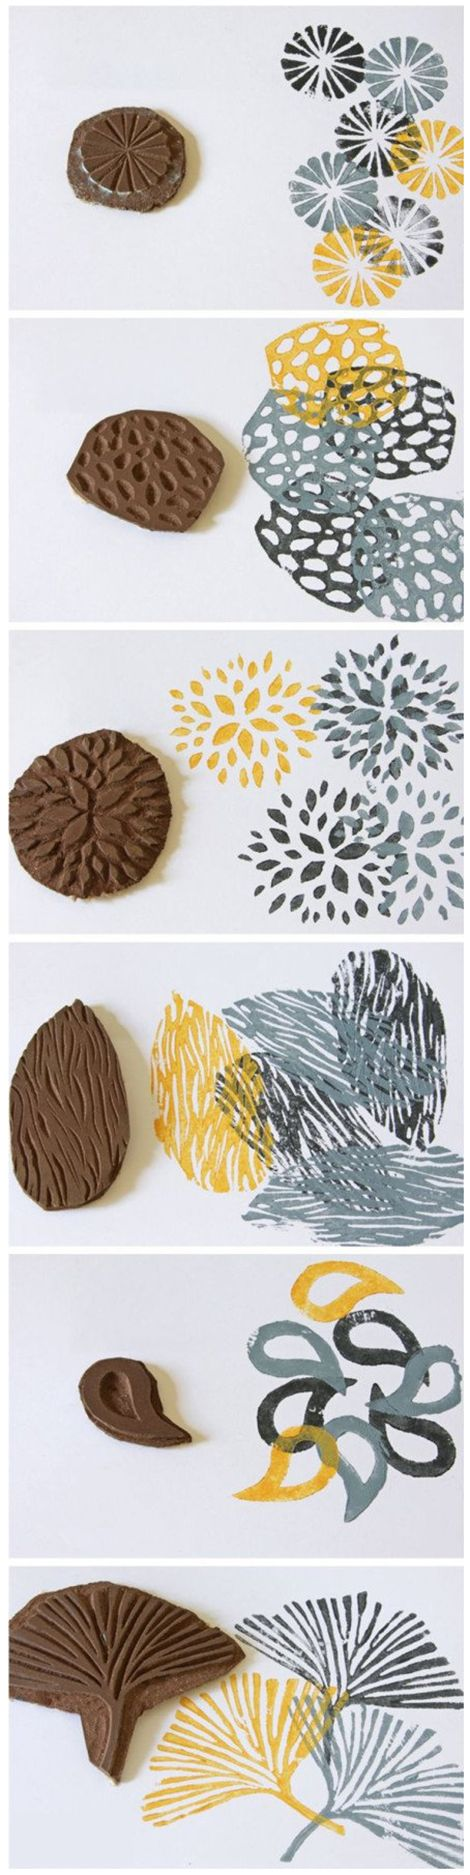 Cool Idea | DIY & Crafts Tutorials